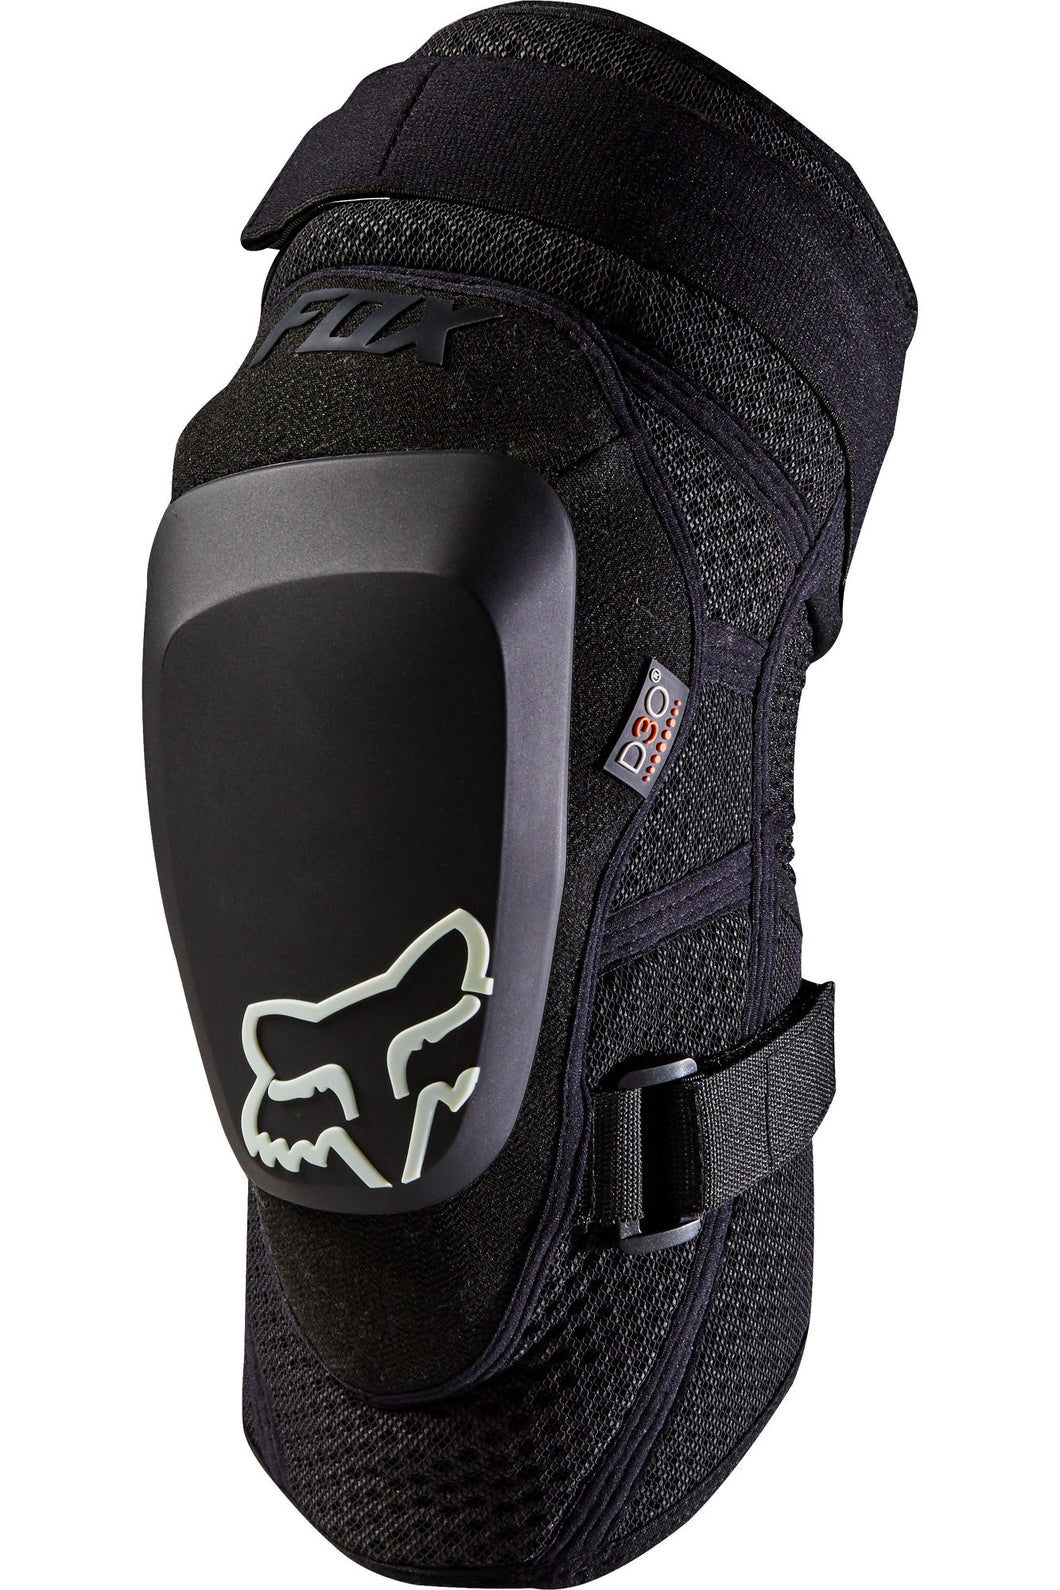 Launch D30® Knee Guard